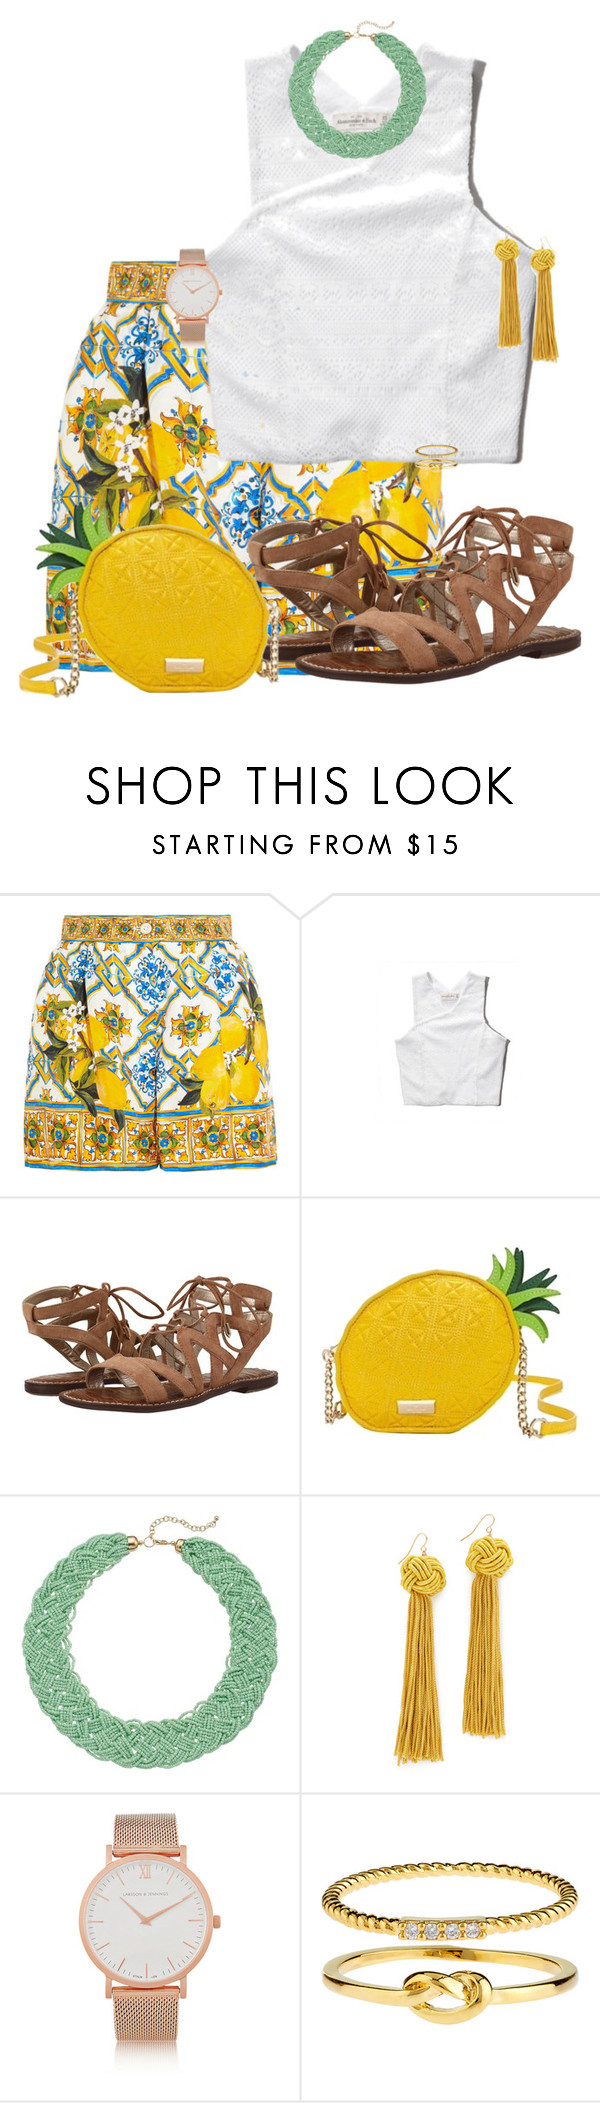 """""""S - Shopping"""" by kaciwiens on Polyvore featuring Dolce&Gabbana, Abercrombie & Fitch, Sam Edelman, Kate Spade, Vanessa Mooney, Larsson & Jennings and Accessorize"""